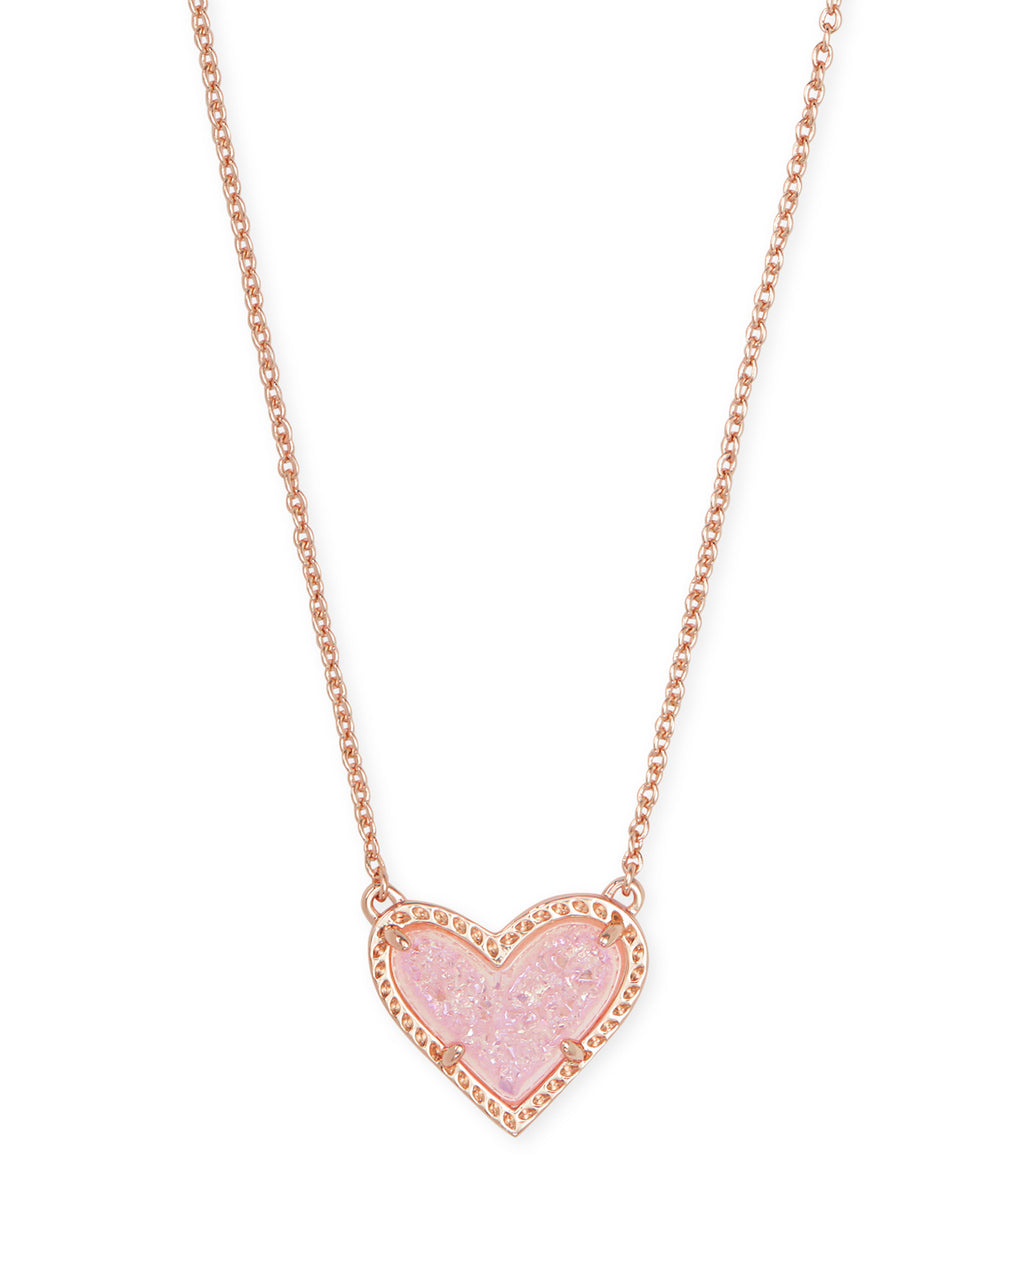 Ari Heart Pendant Necklace - Rose Gold